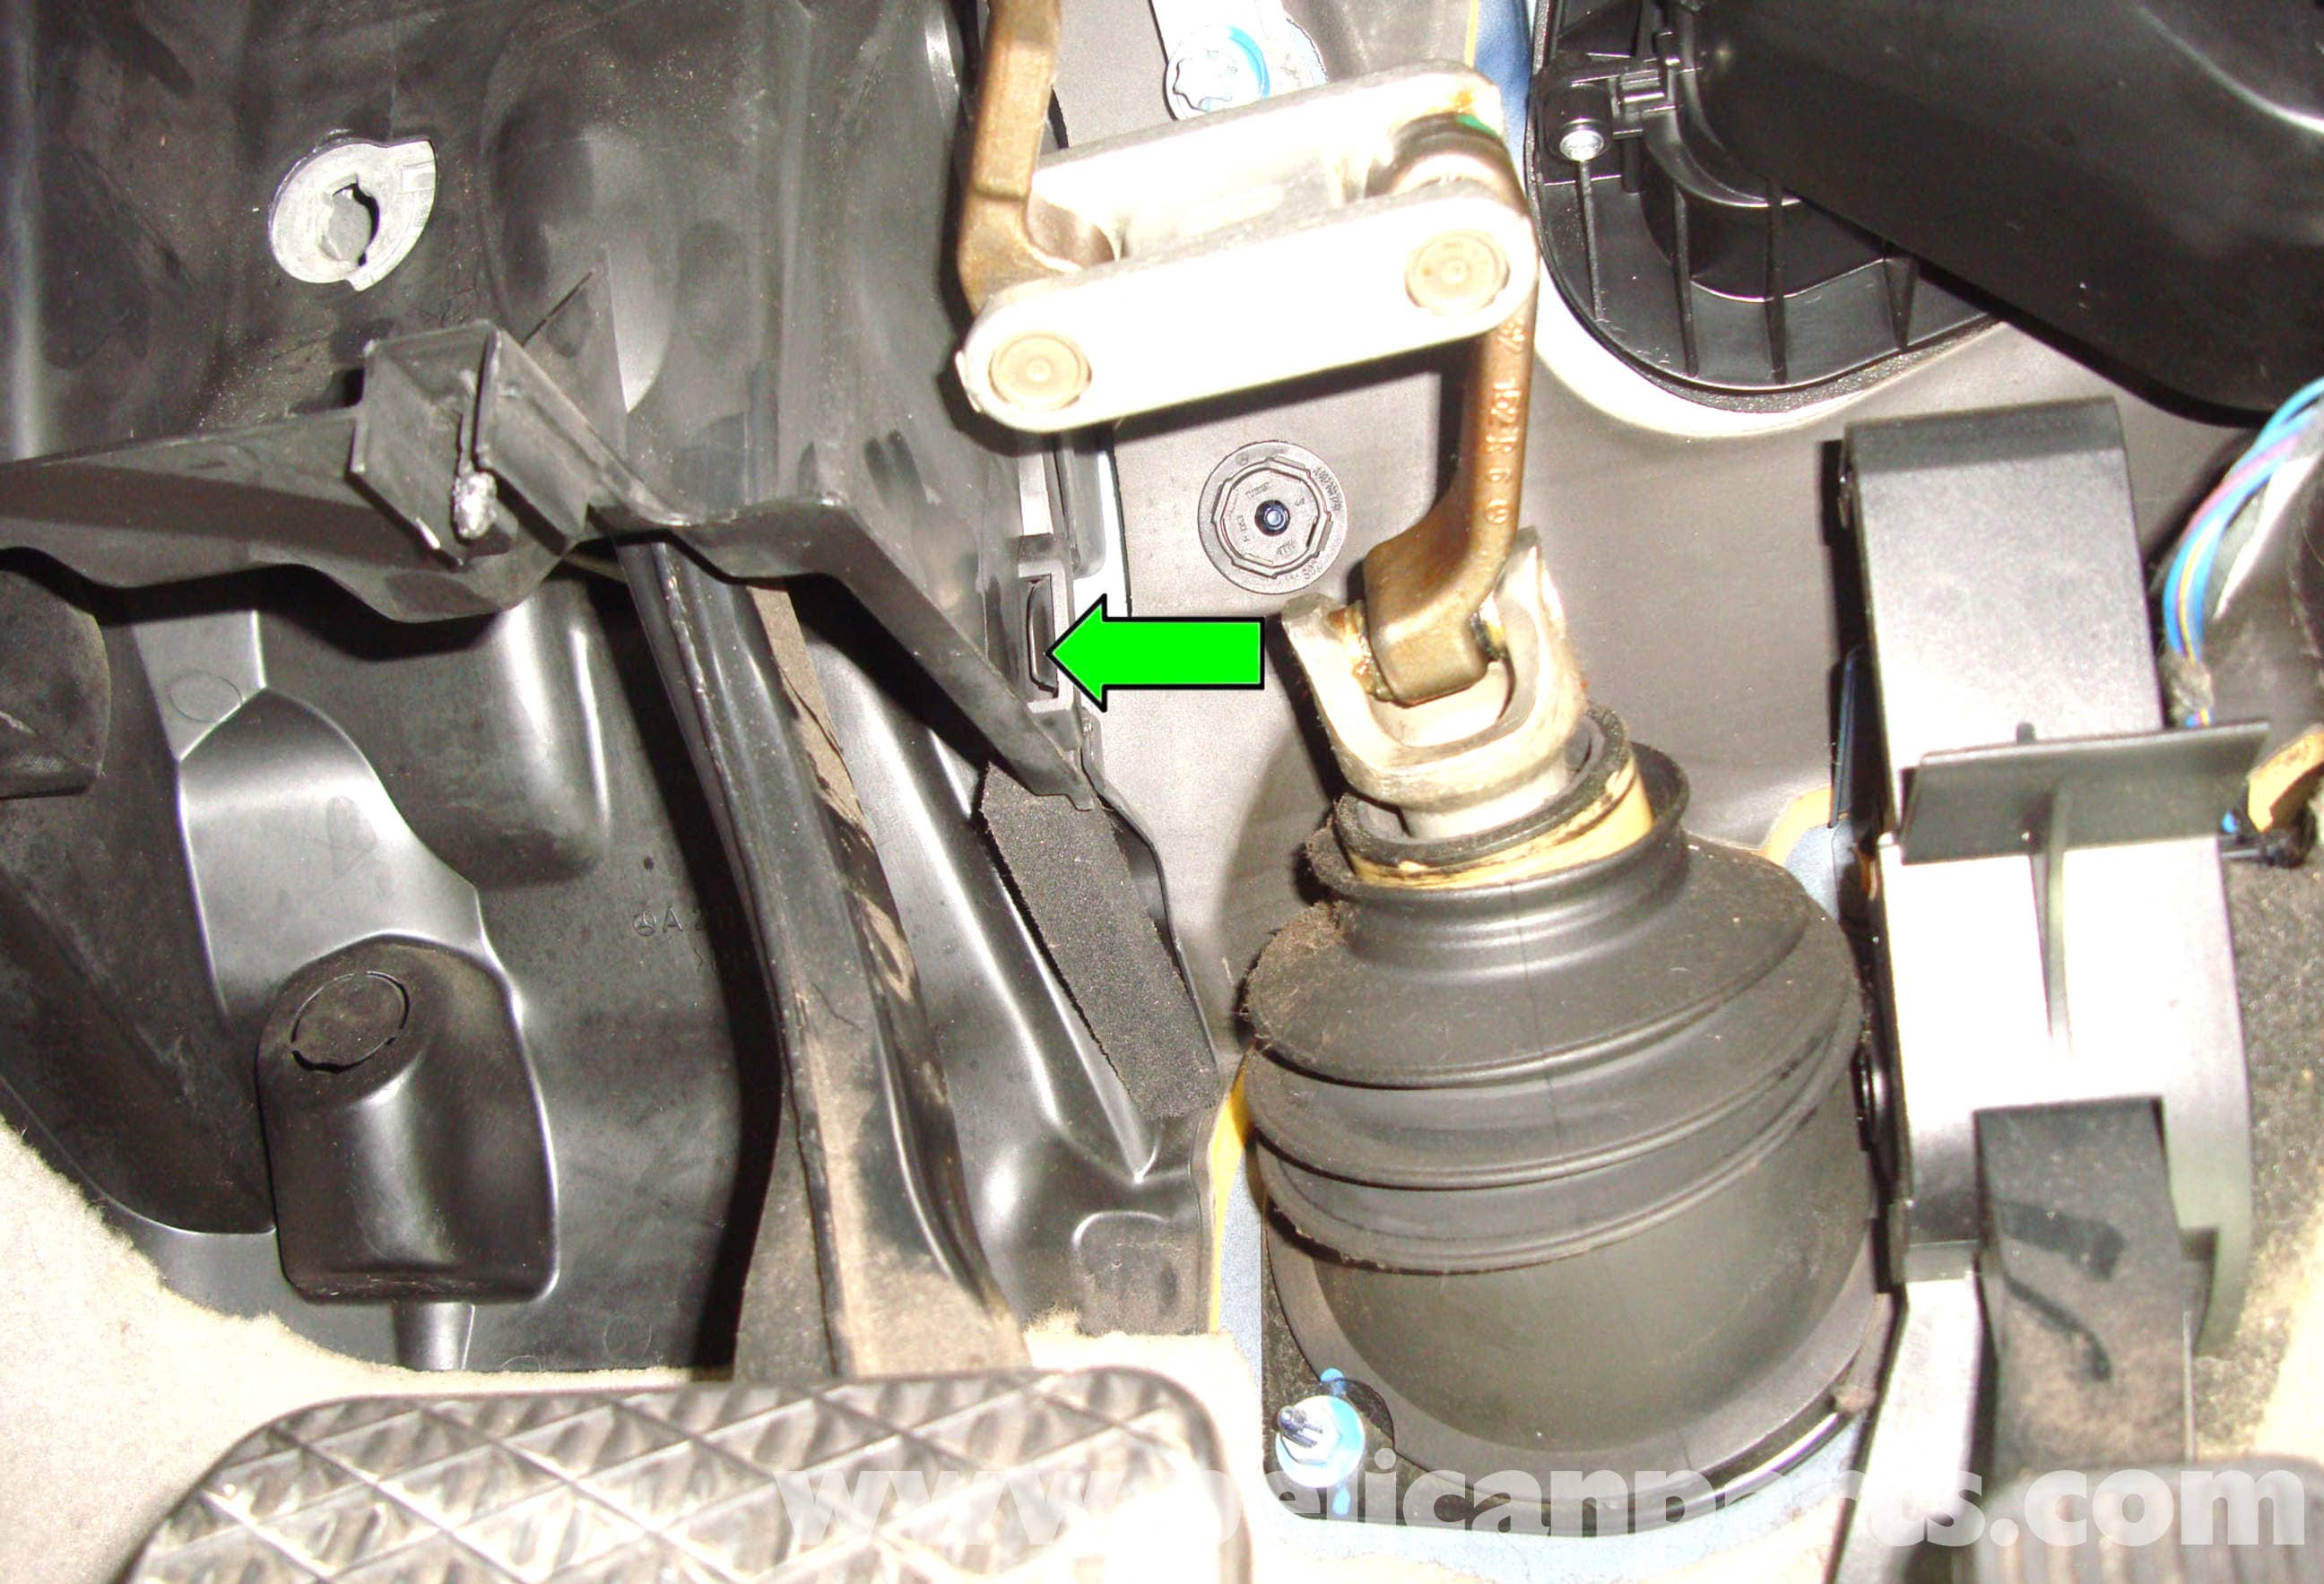 Mercedes Benz W211 Brake Master Cylinder Replacement 2003 2009 Gl450 Fuel Filter Large Image Extra